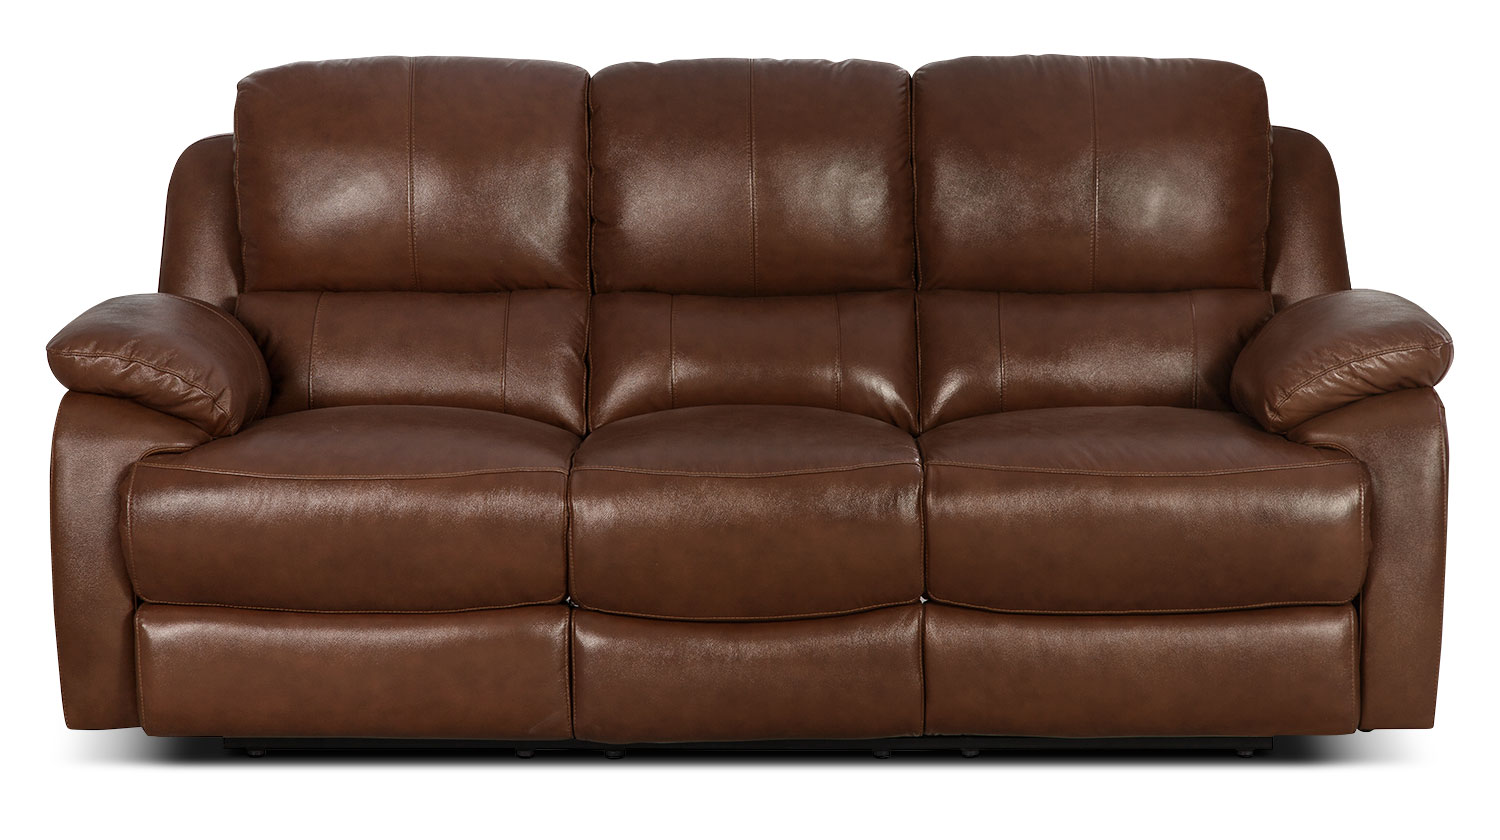 Living Room Furniture - Cairo Genuine Leather Power Reclining Sofa – Brown